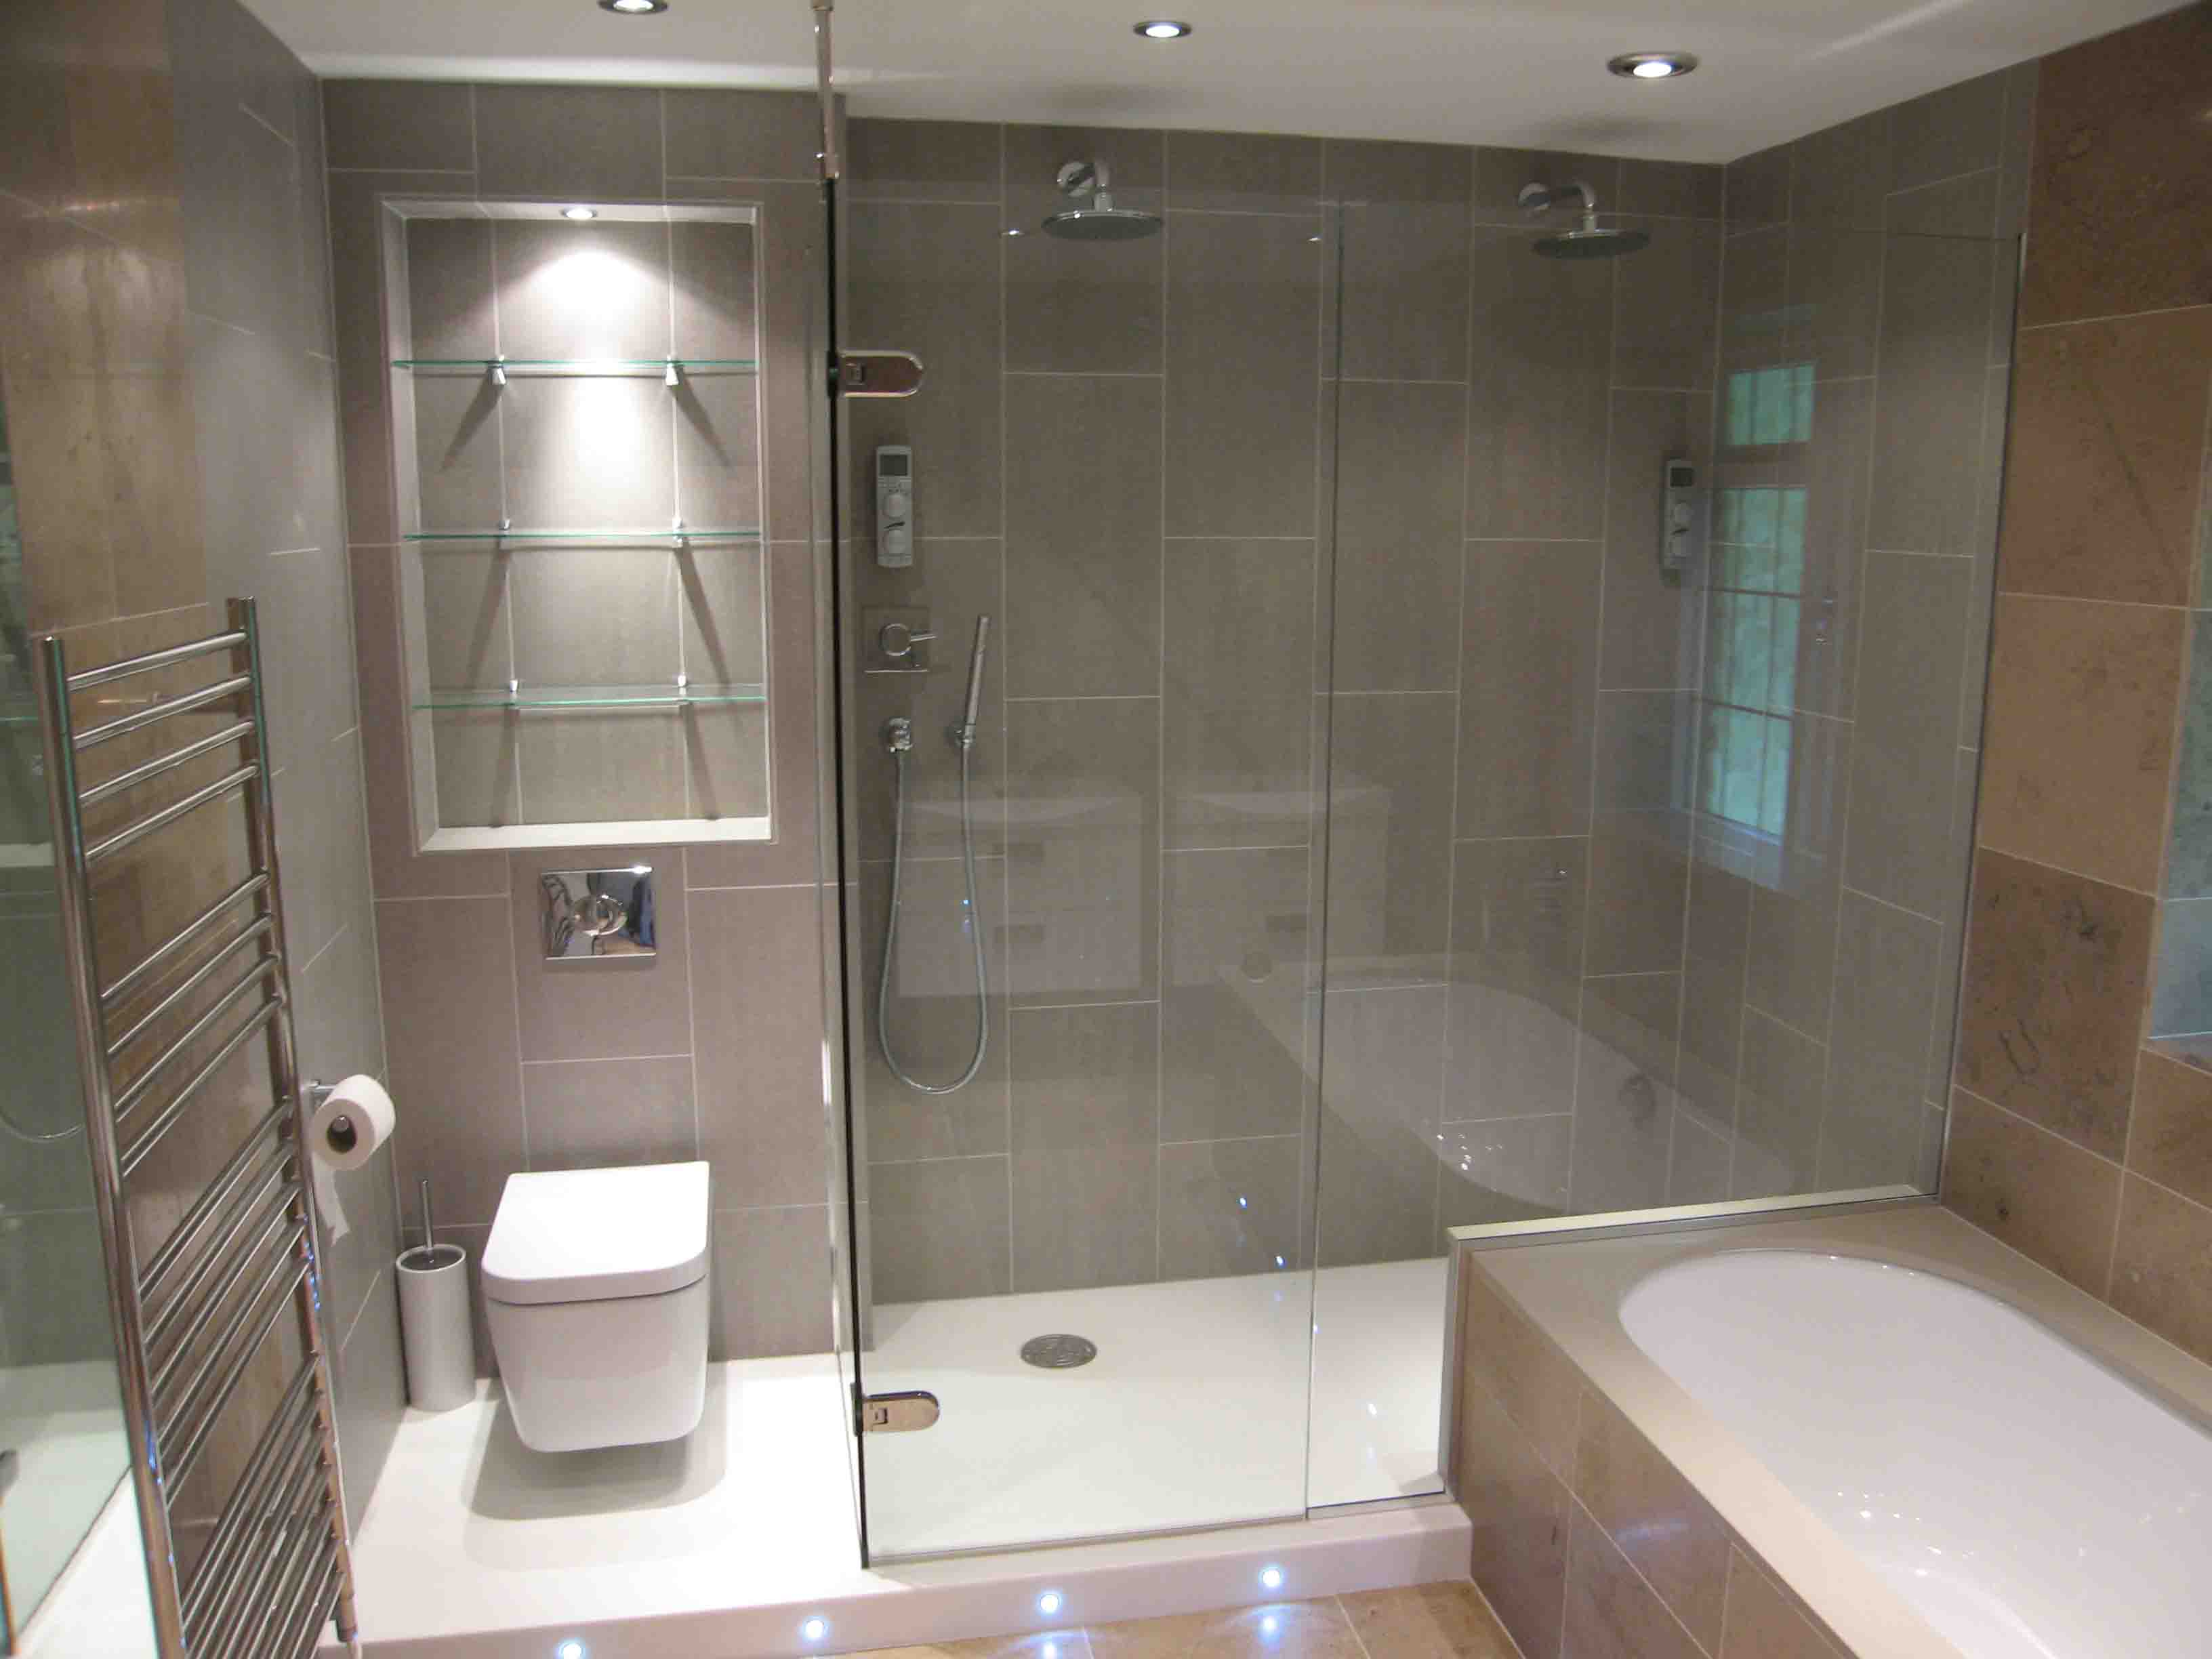 Over Bath Shower Screens Made to Measure - Bespoke Bath Screens ...